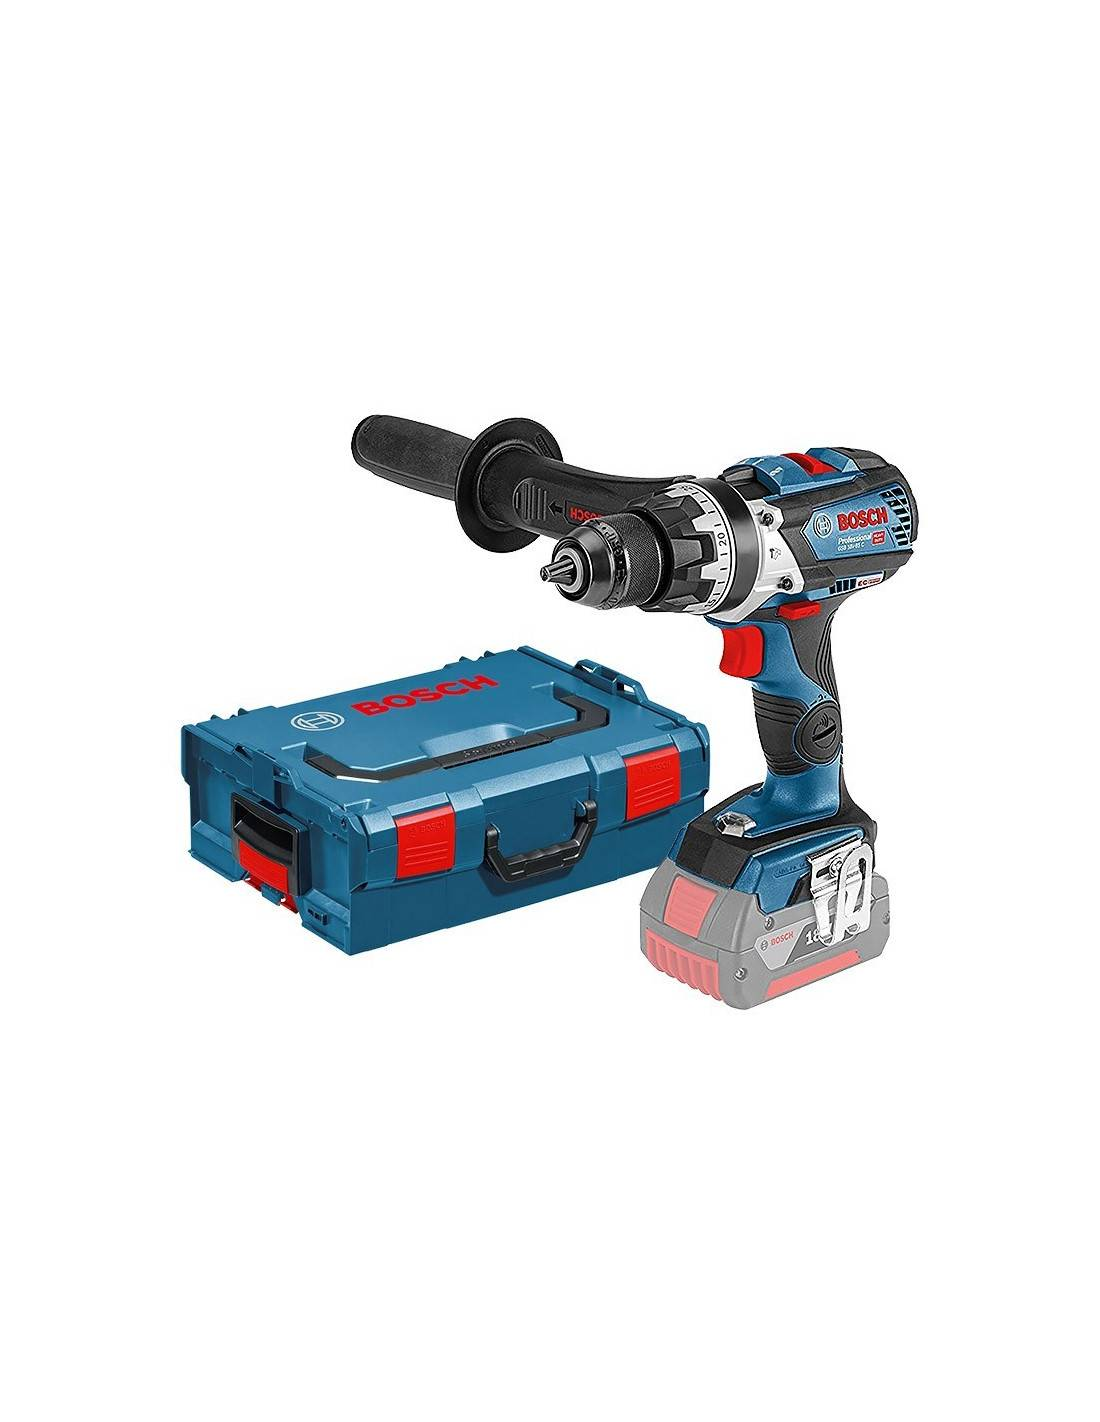 BOSCH - Perceuse visseuse à percussion GSB 18V-85 C version solo (machine seule) en coffret L-BOXX - 06019G0302